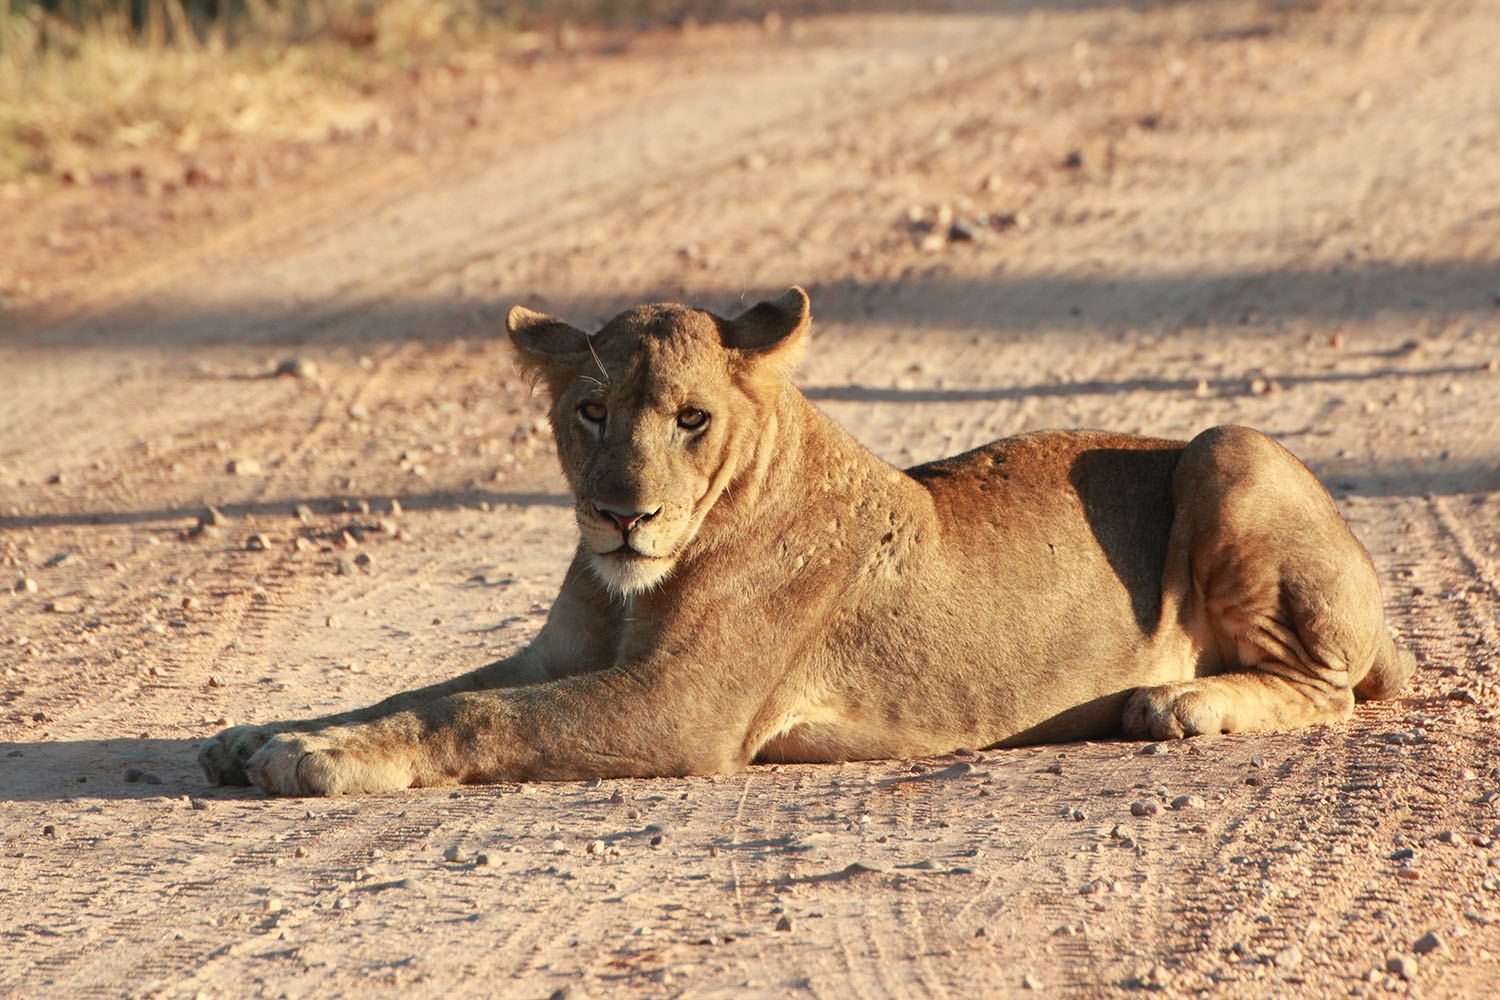 south luangwa national park zambia-national-parks-malawian-style-malawi-adventures-experiences-specialist-tour-operator-wildlife-lions